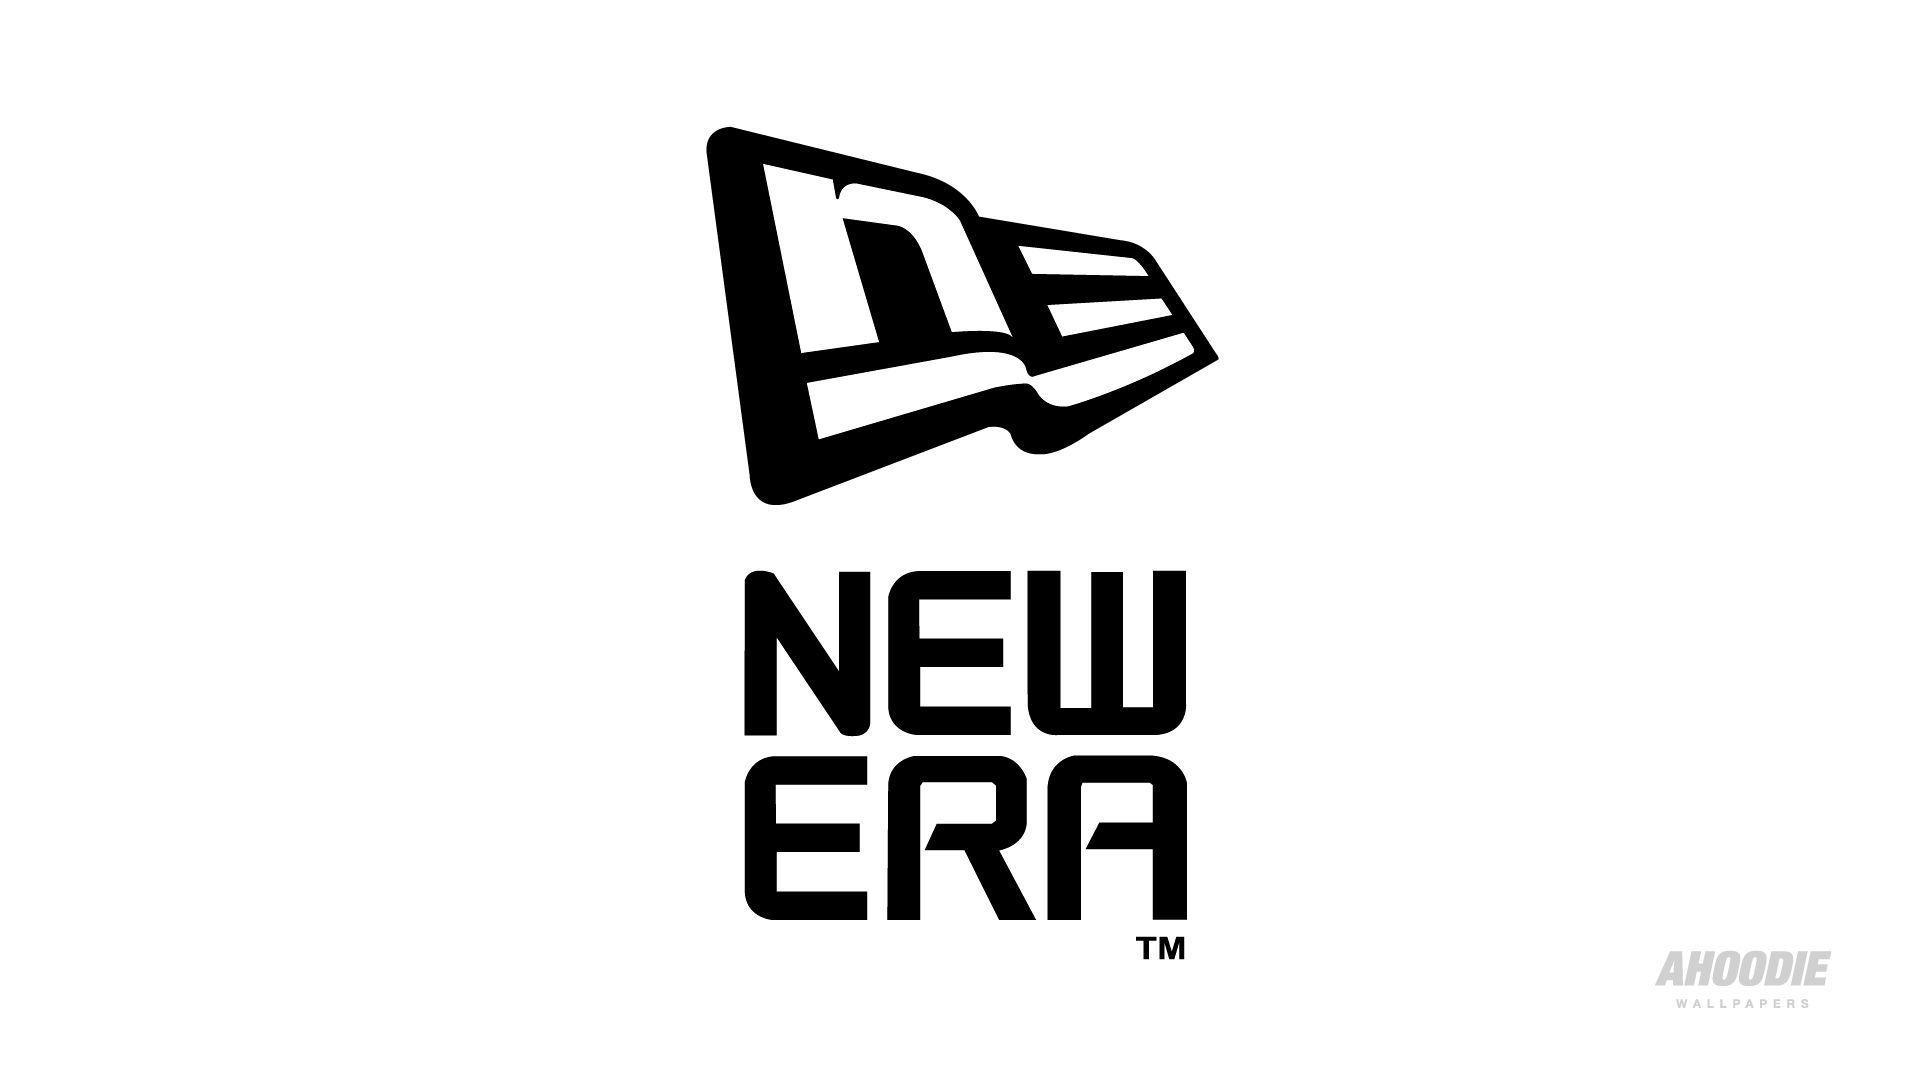 New Era Wallpapers